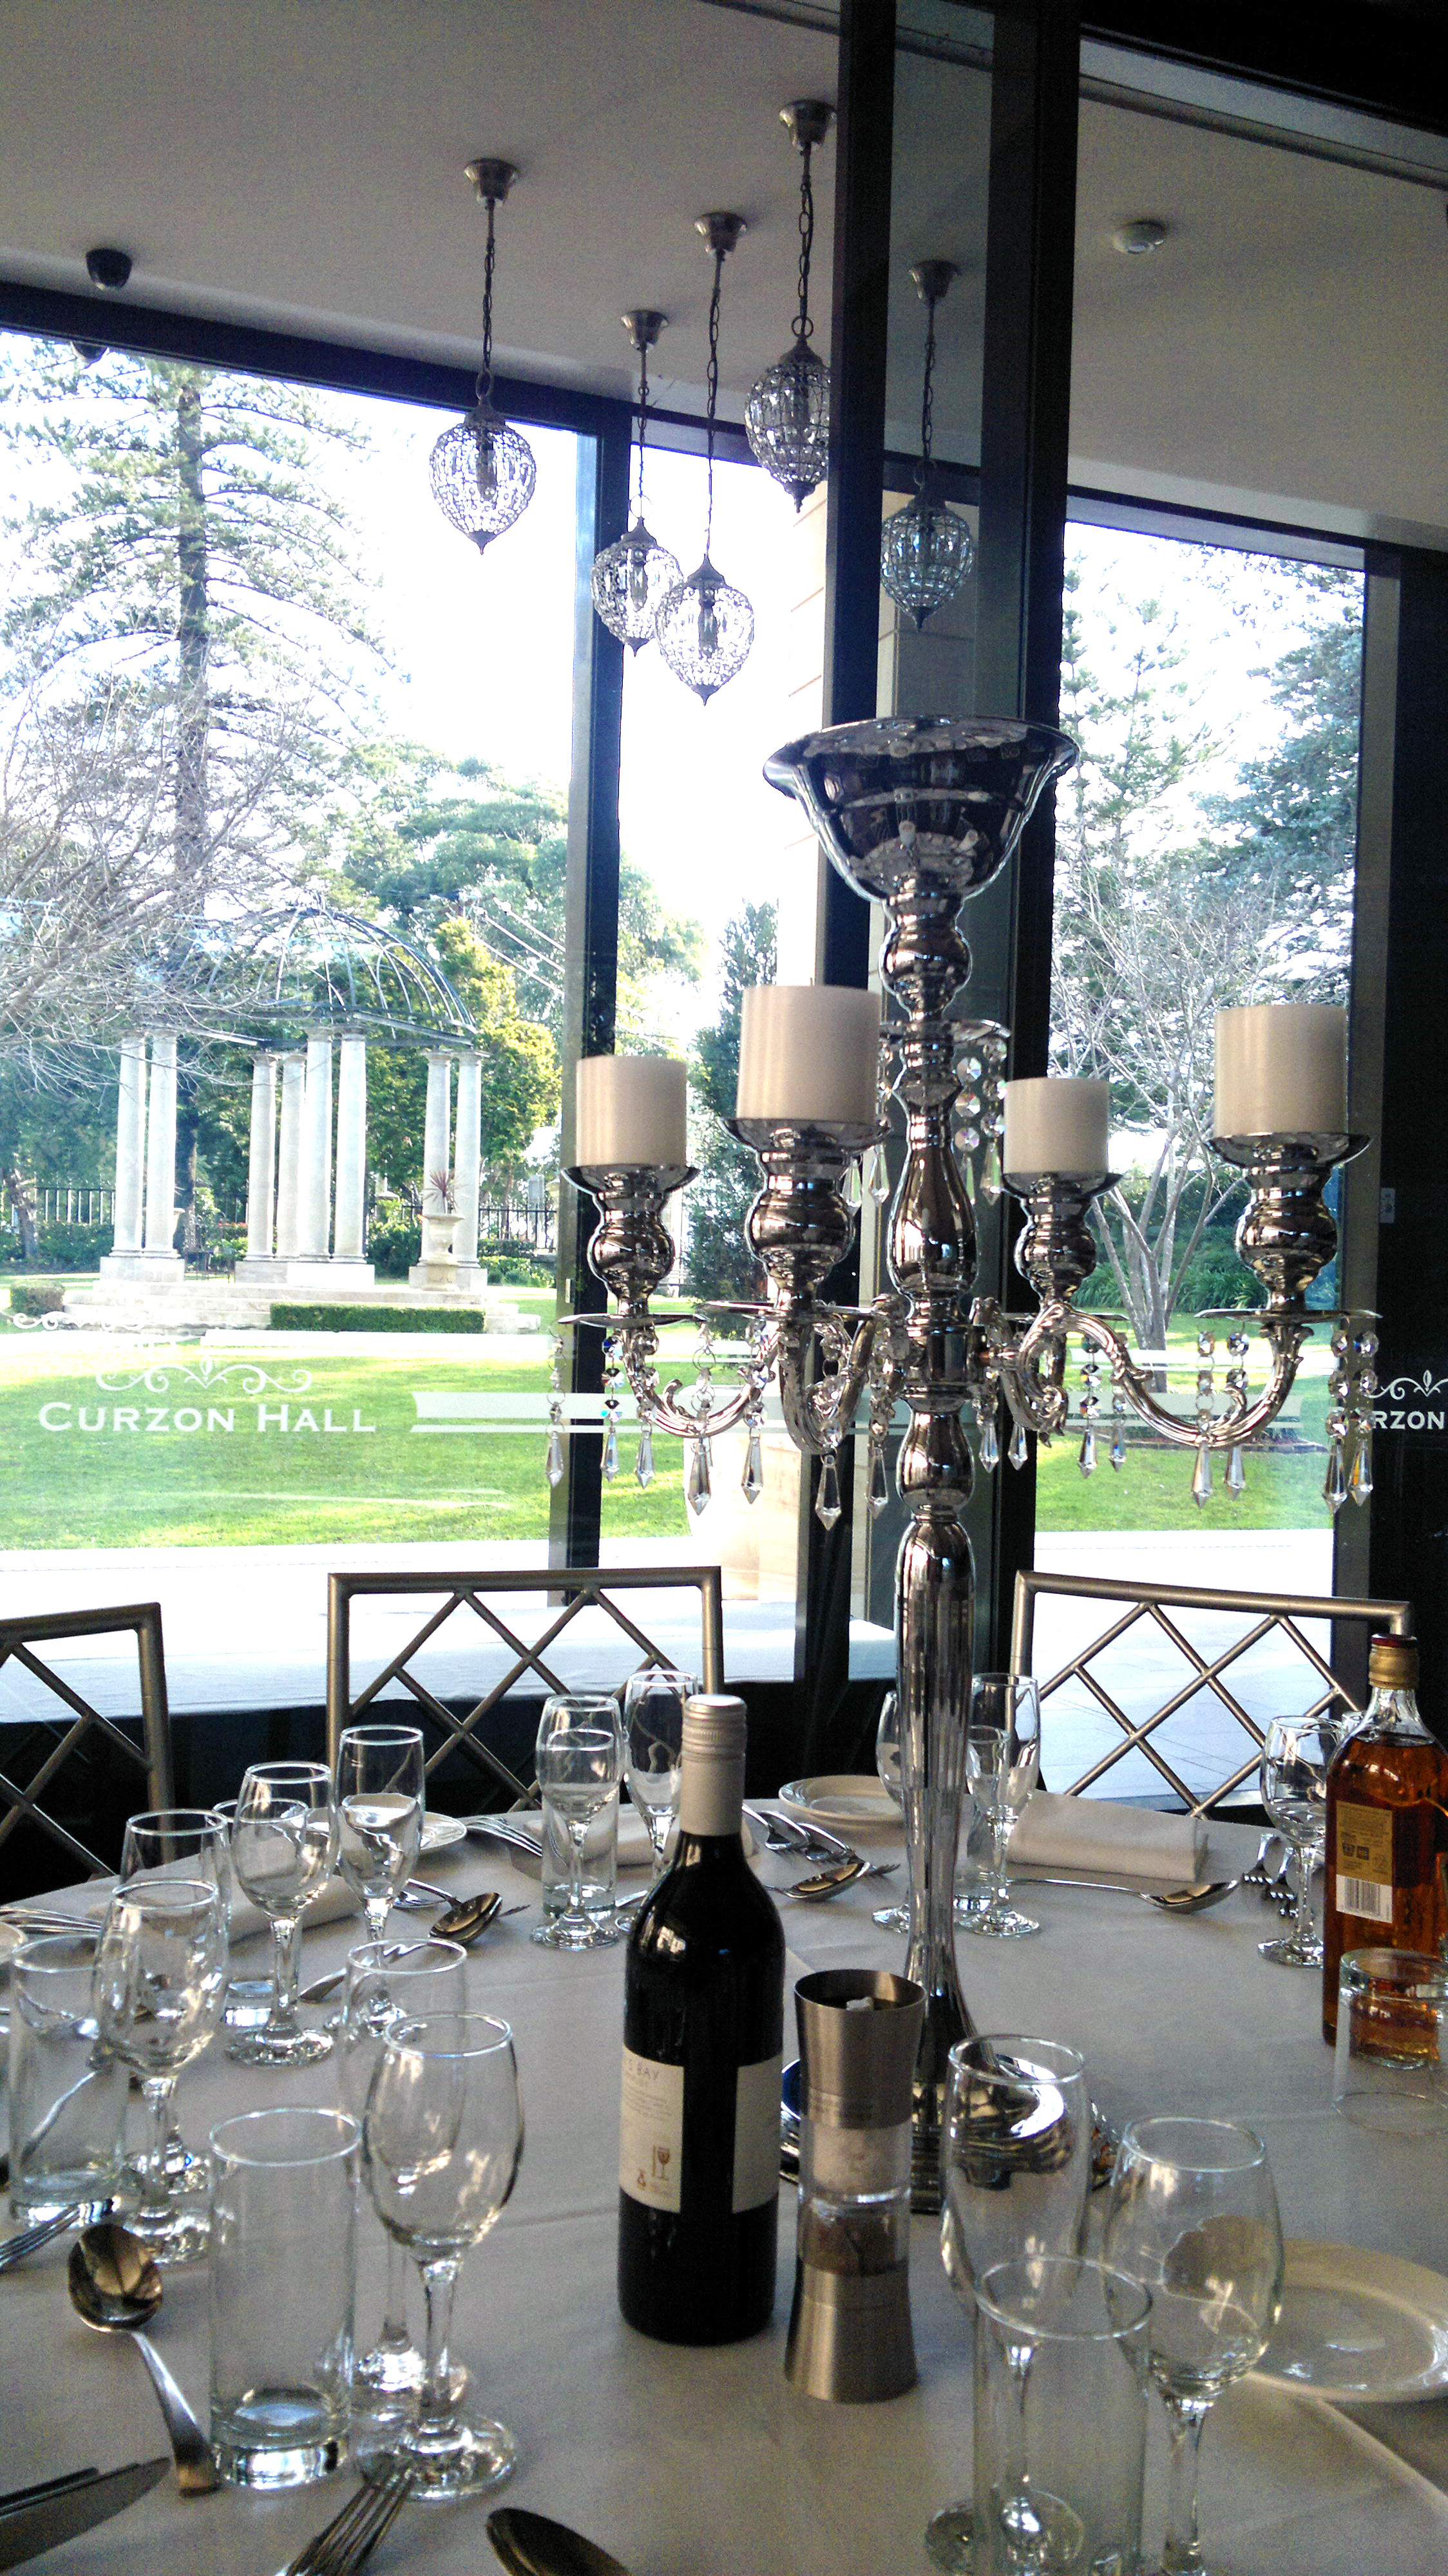 Chrome 5 arm candelabra at Curzon Hall 1